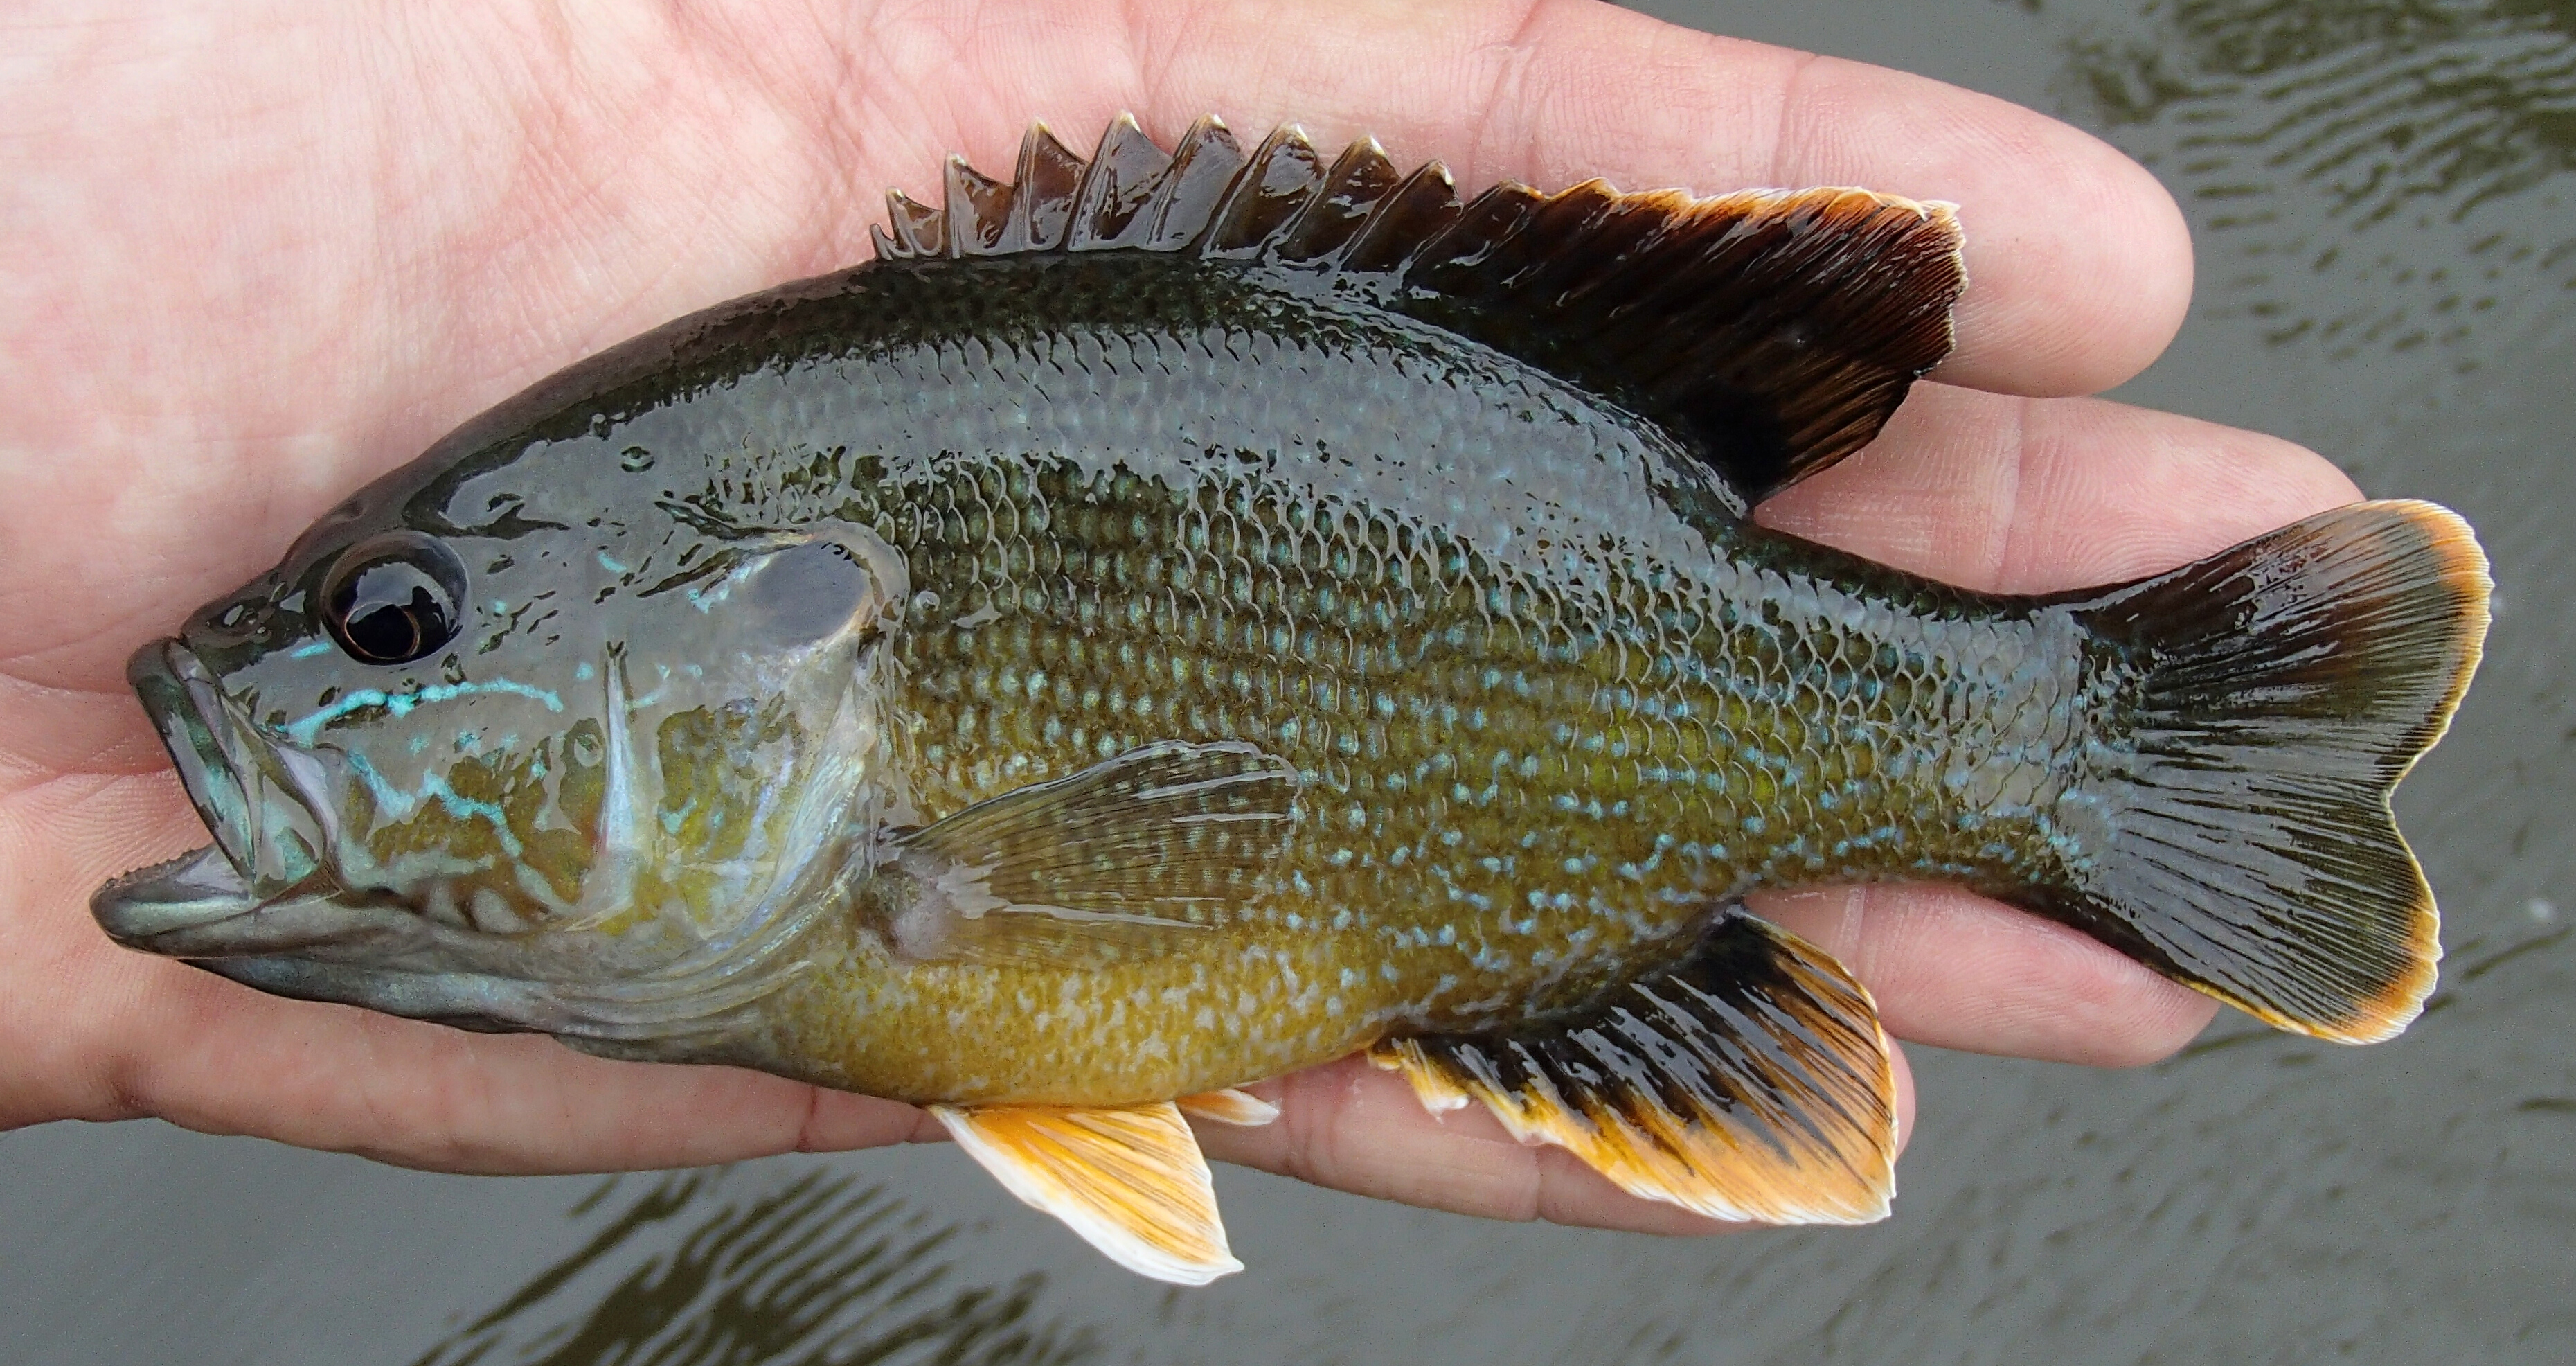 Can you id this fish bluegill hybrid page 2 ar15 com for Illinois fish species